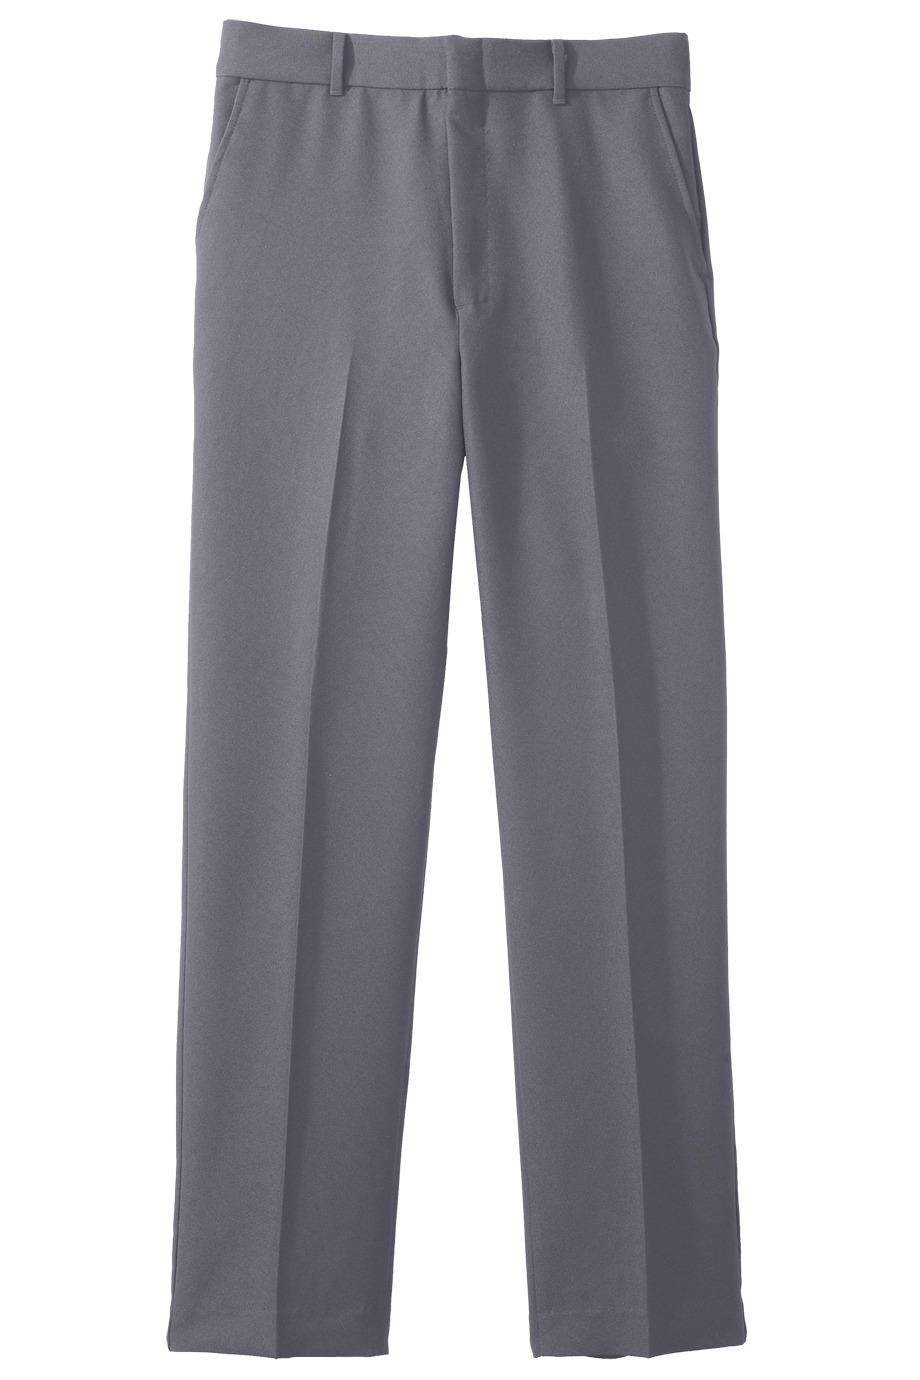 Edwards Garment 2290 - Men's Ployester Flat Front Pant